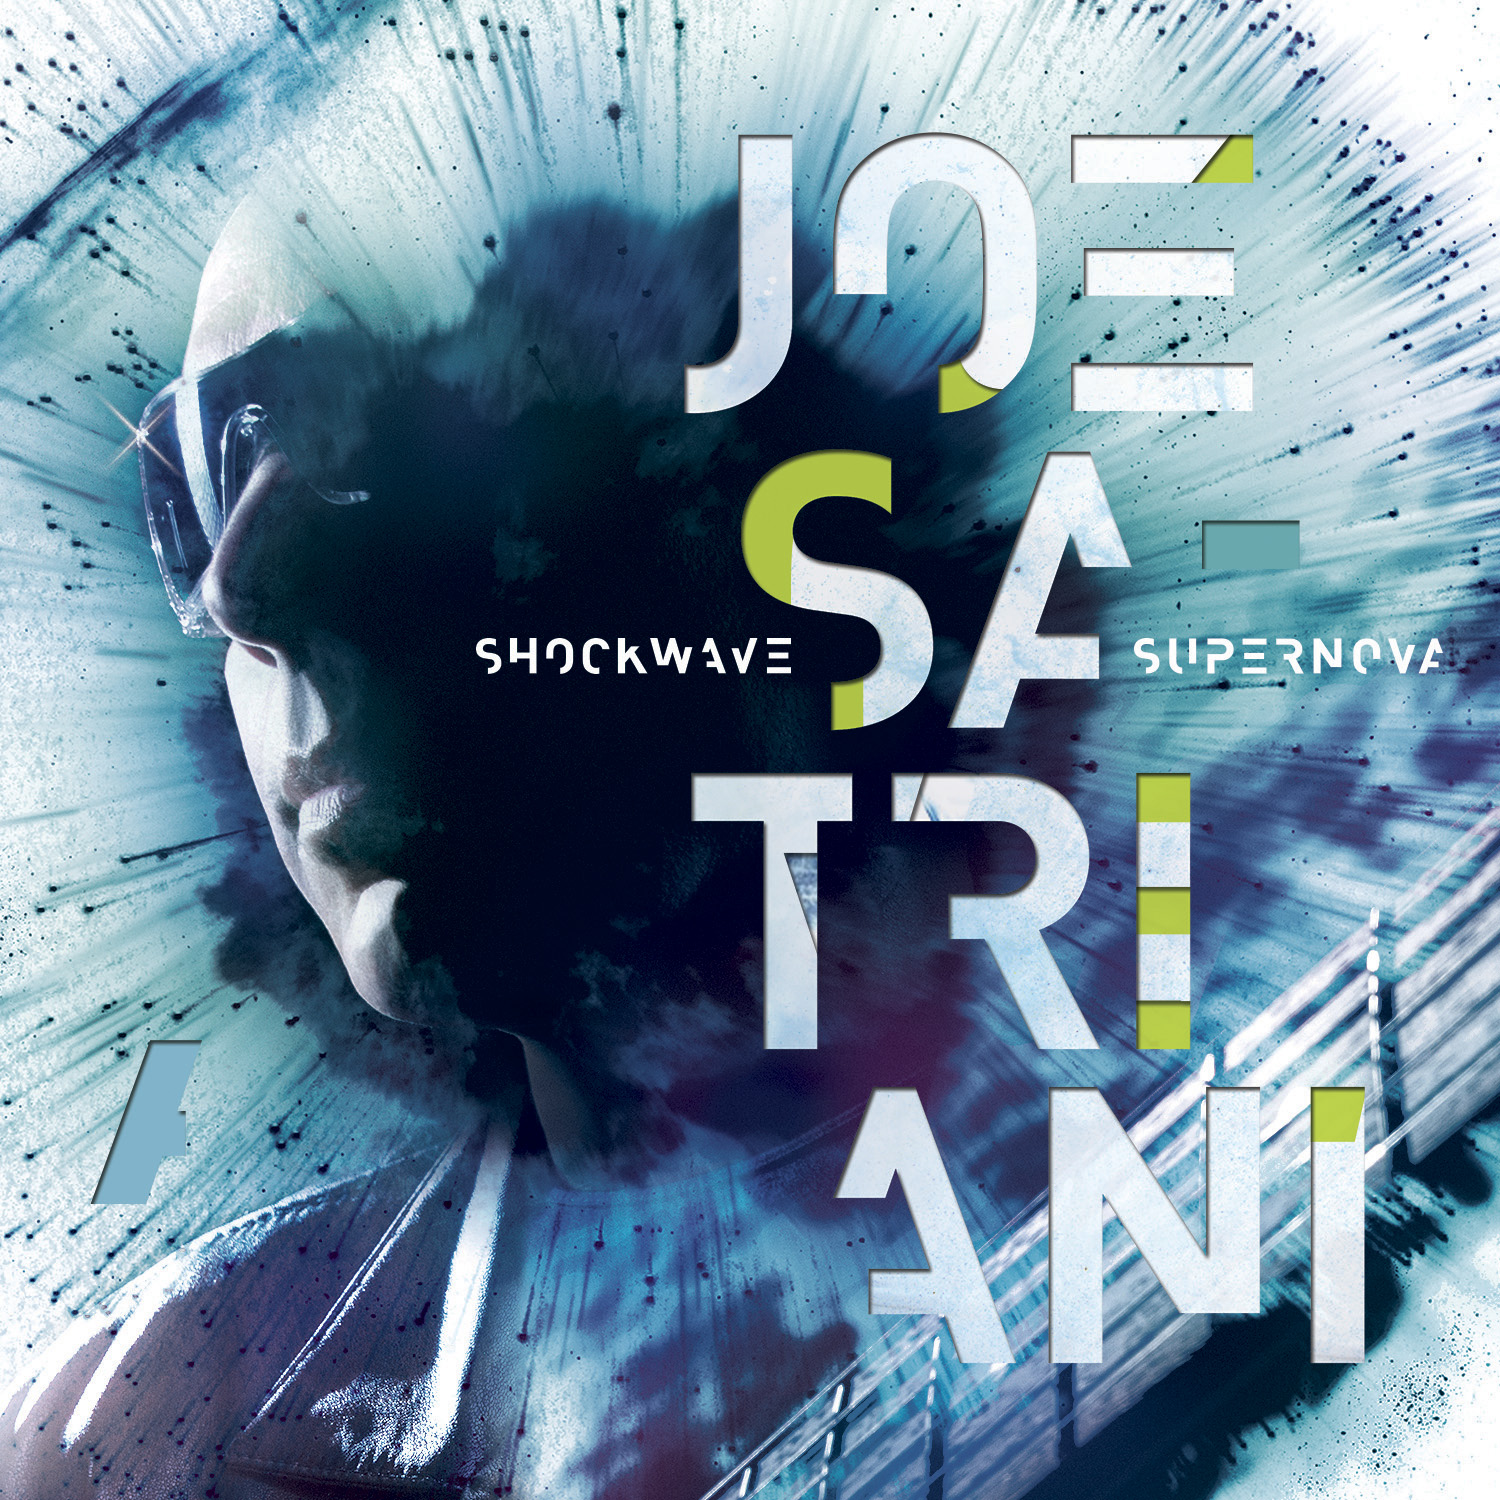 Joe satriani discography download